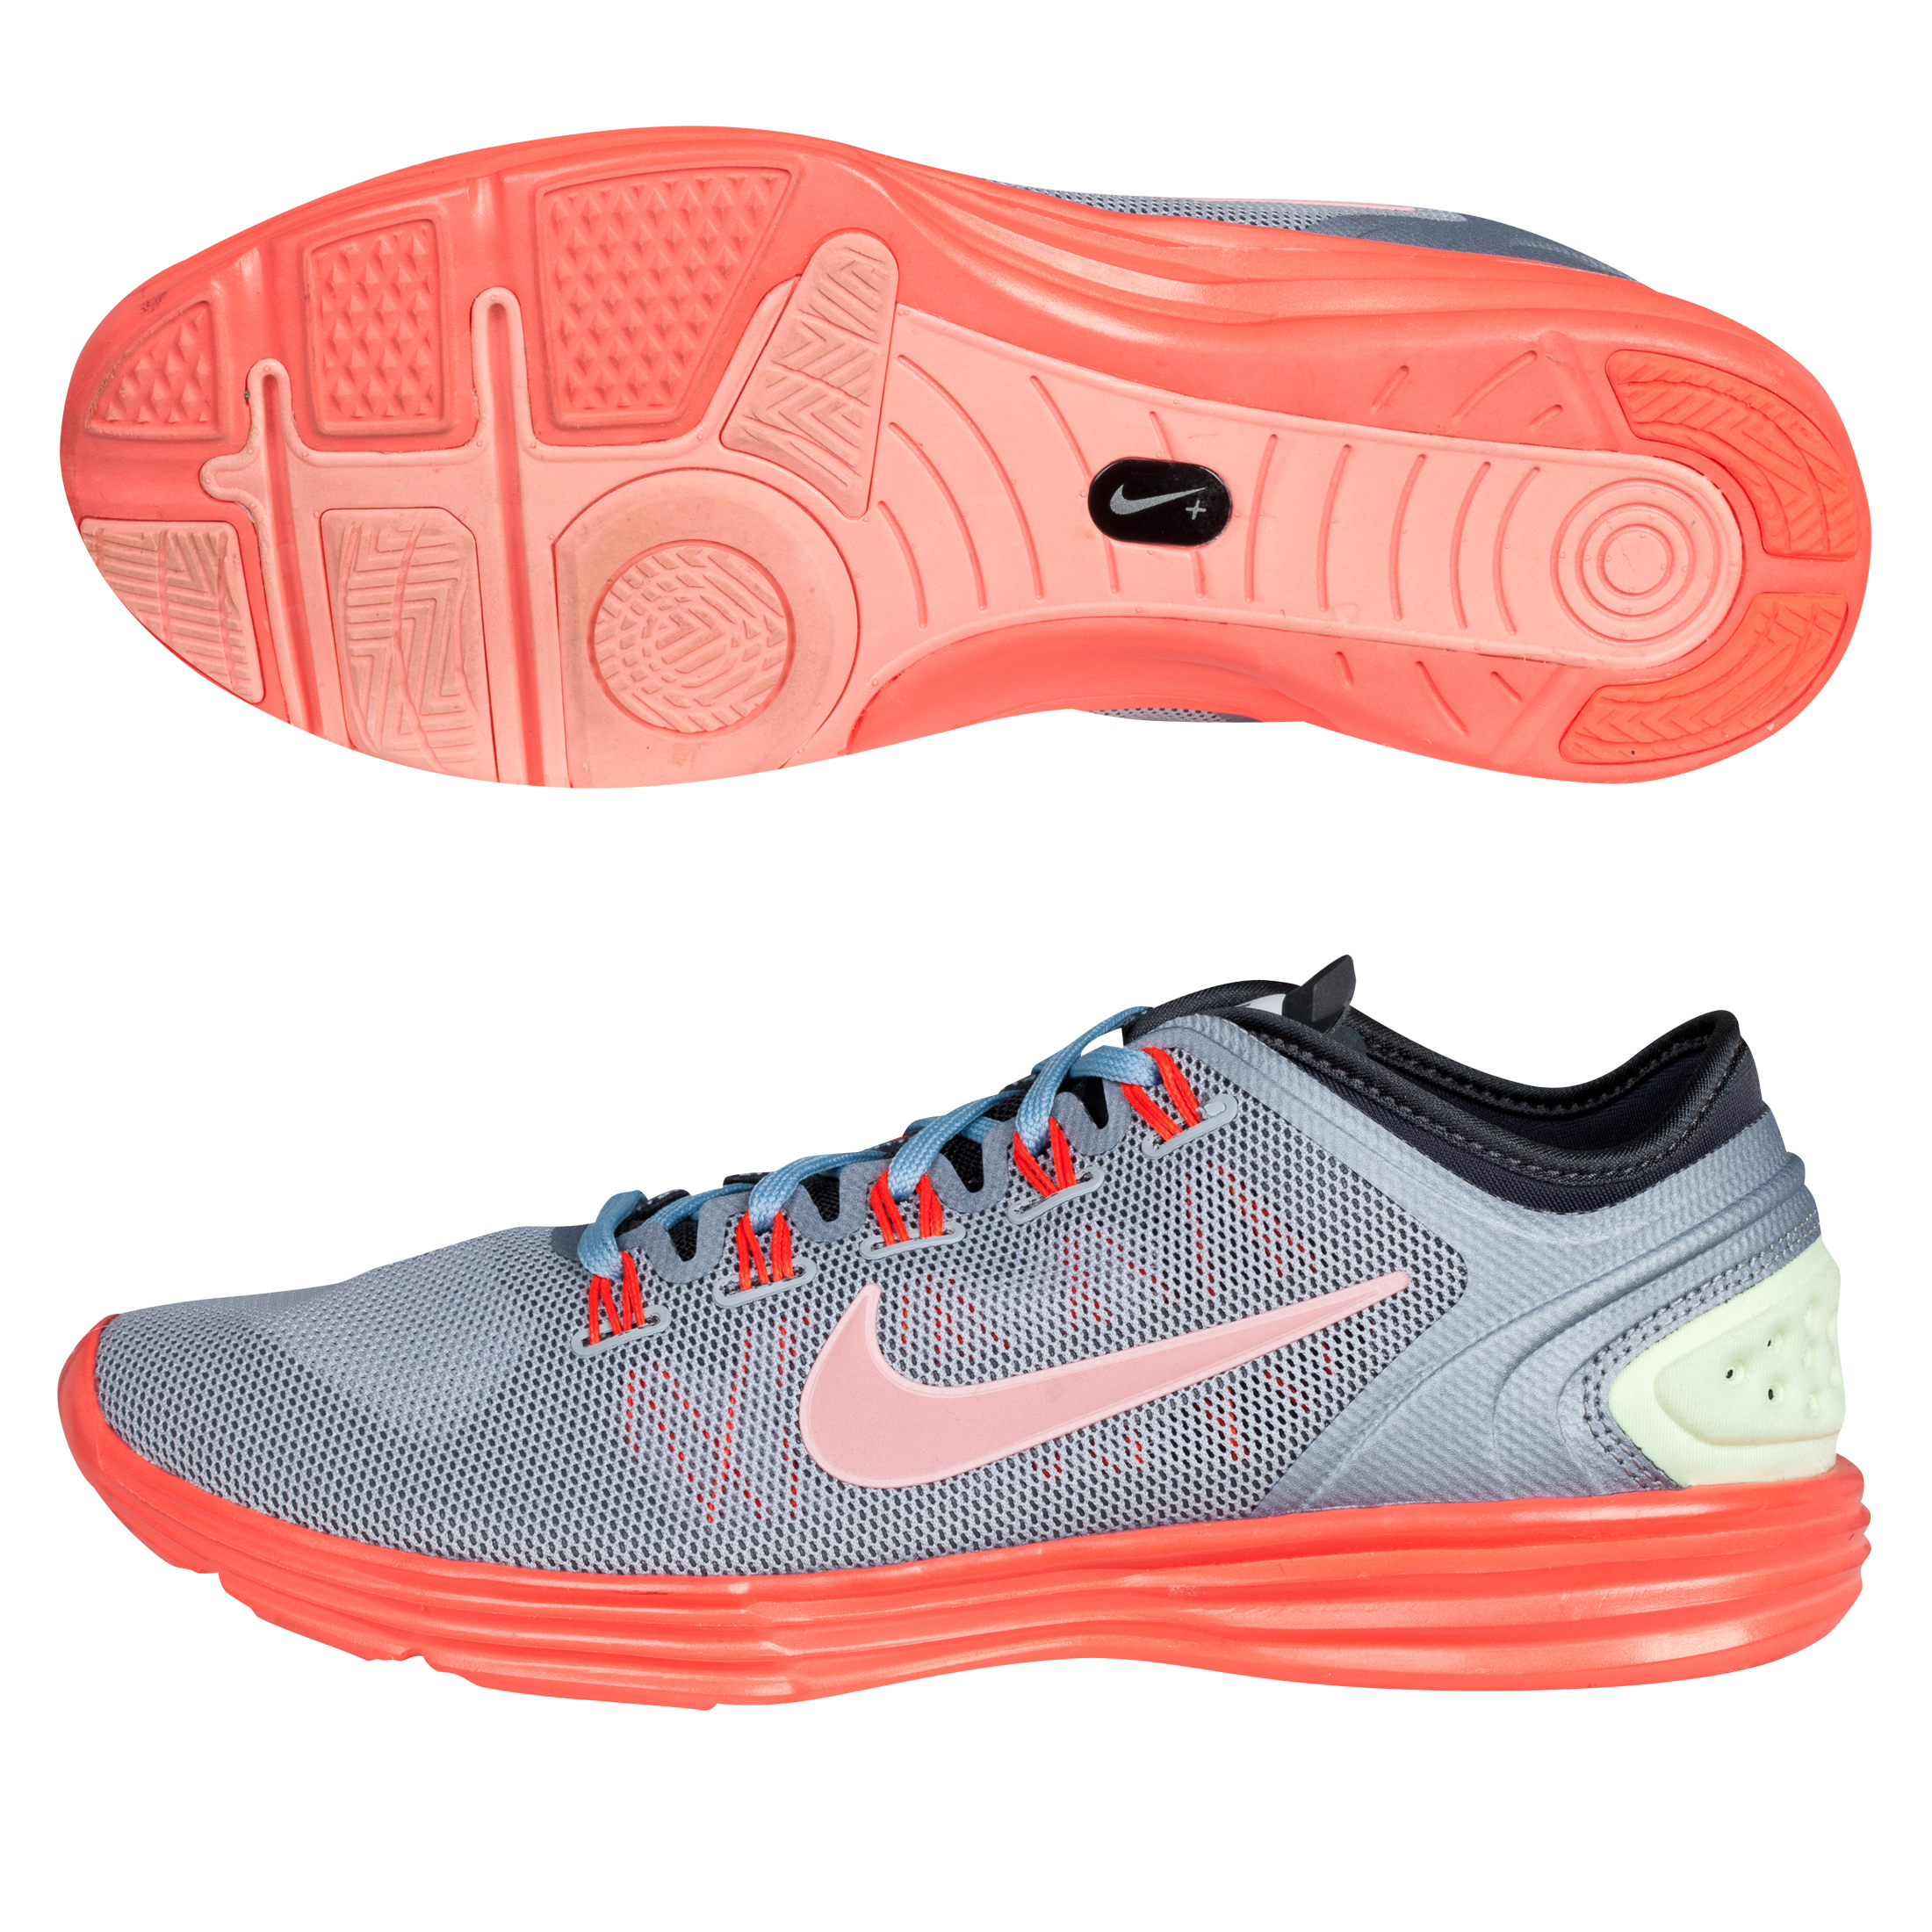 Nike Lunar Hyperworkout Xt+ Wlf Gry/Brght Pch-Anthrct-Brgh - Womens